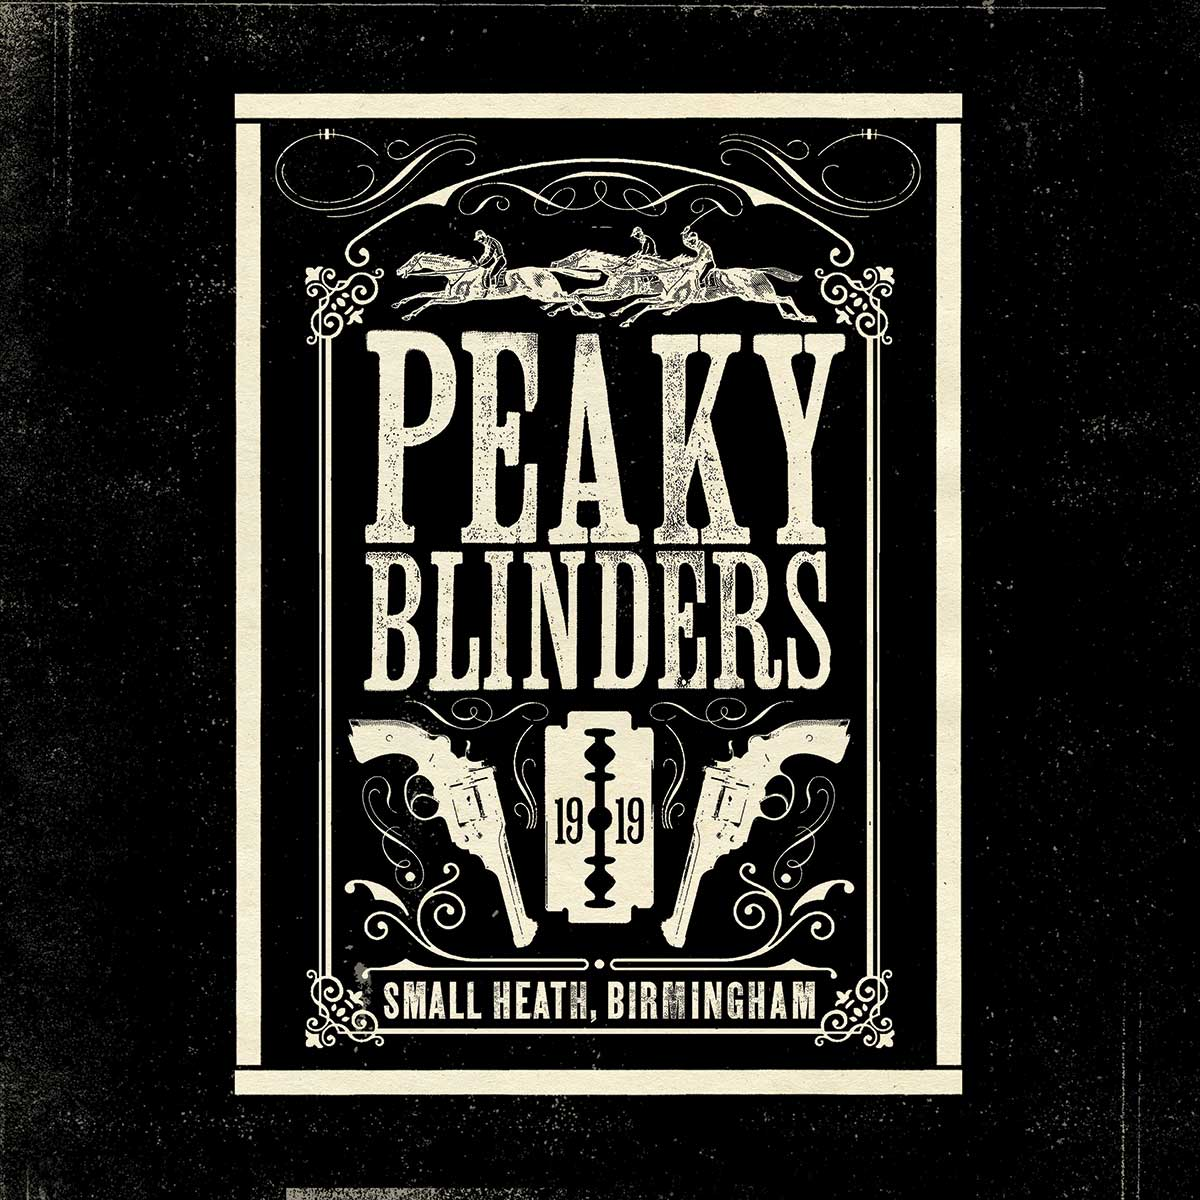 Peaky-Blinders-CD